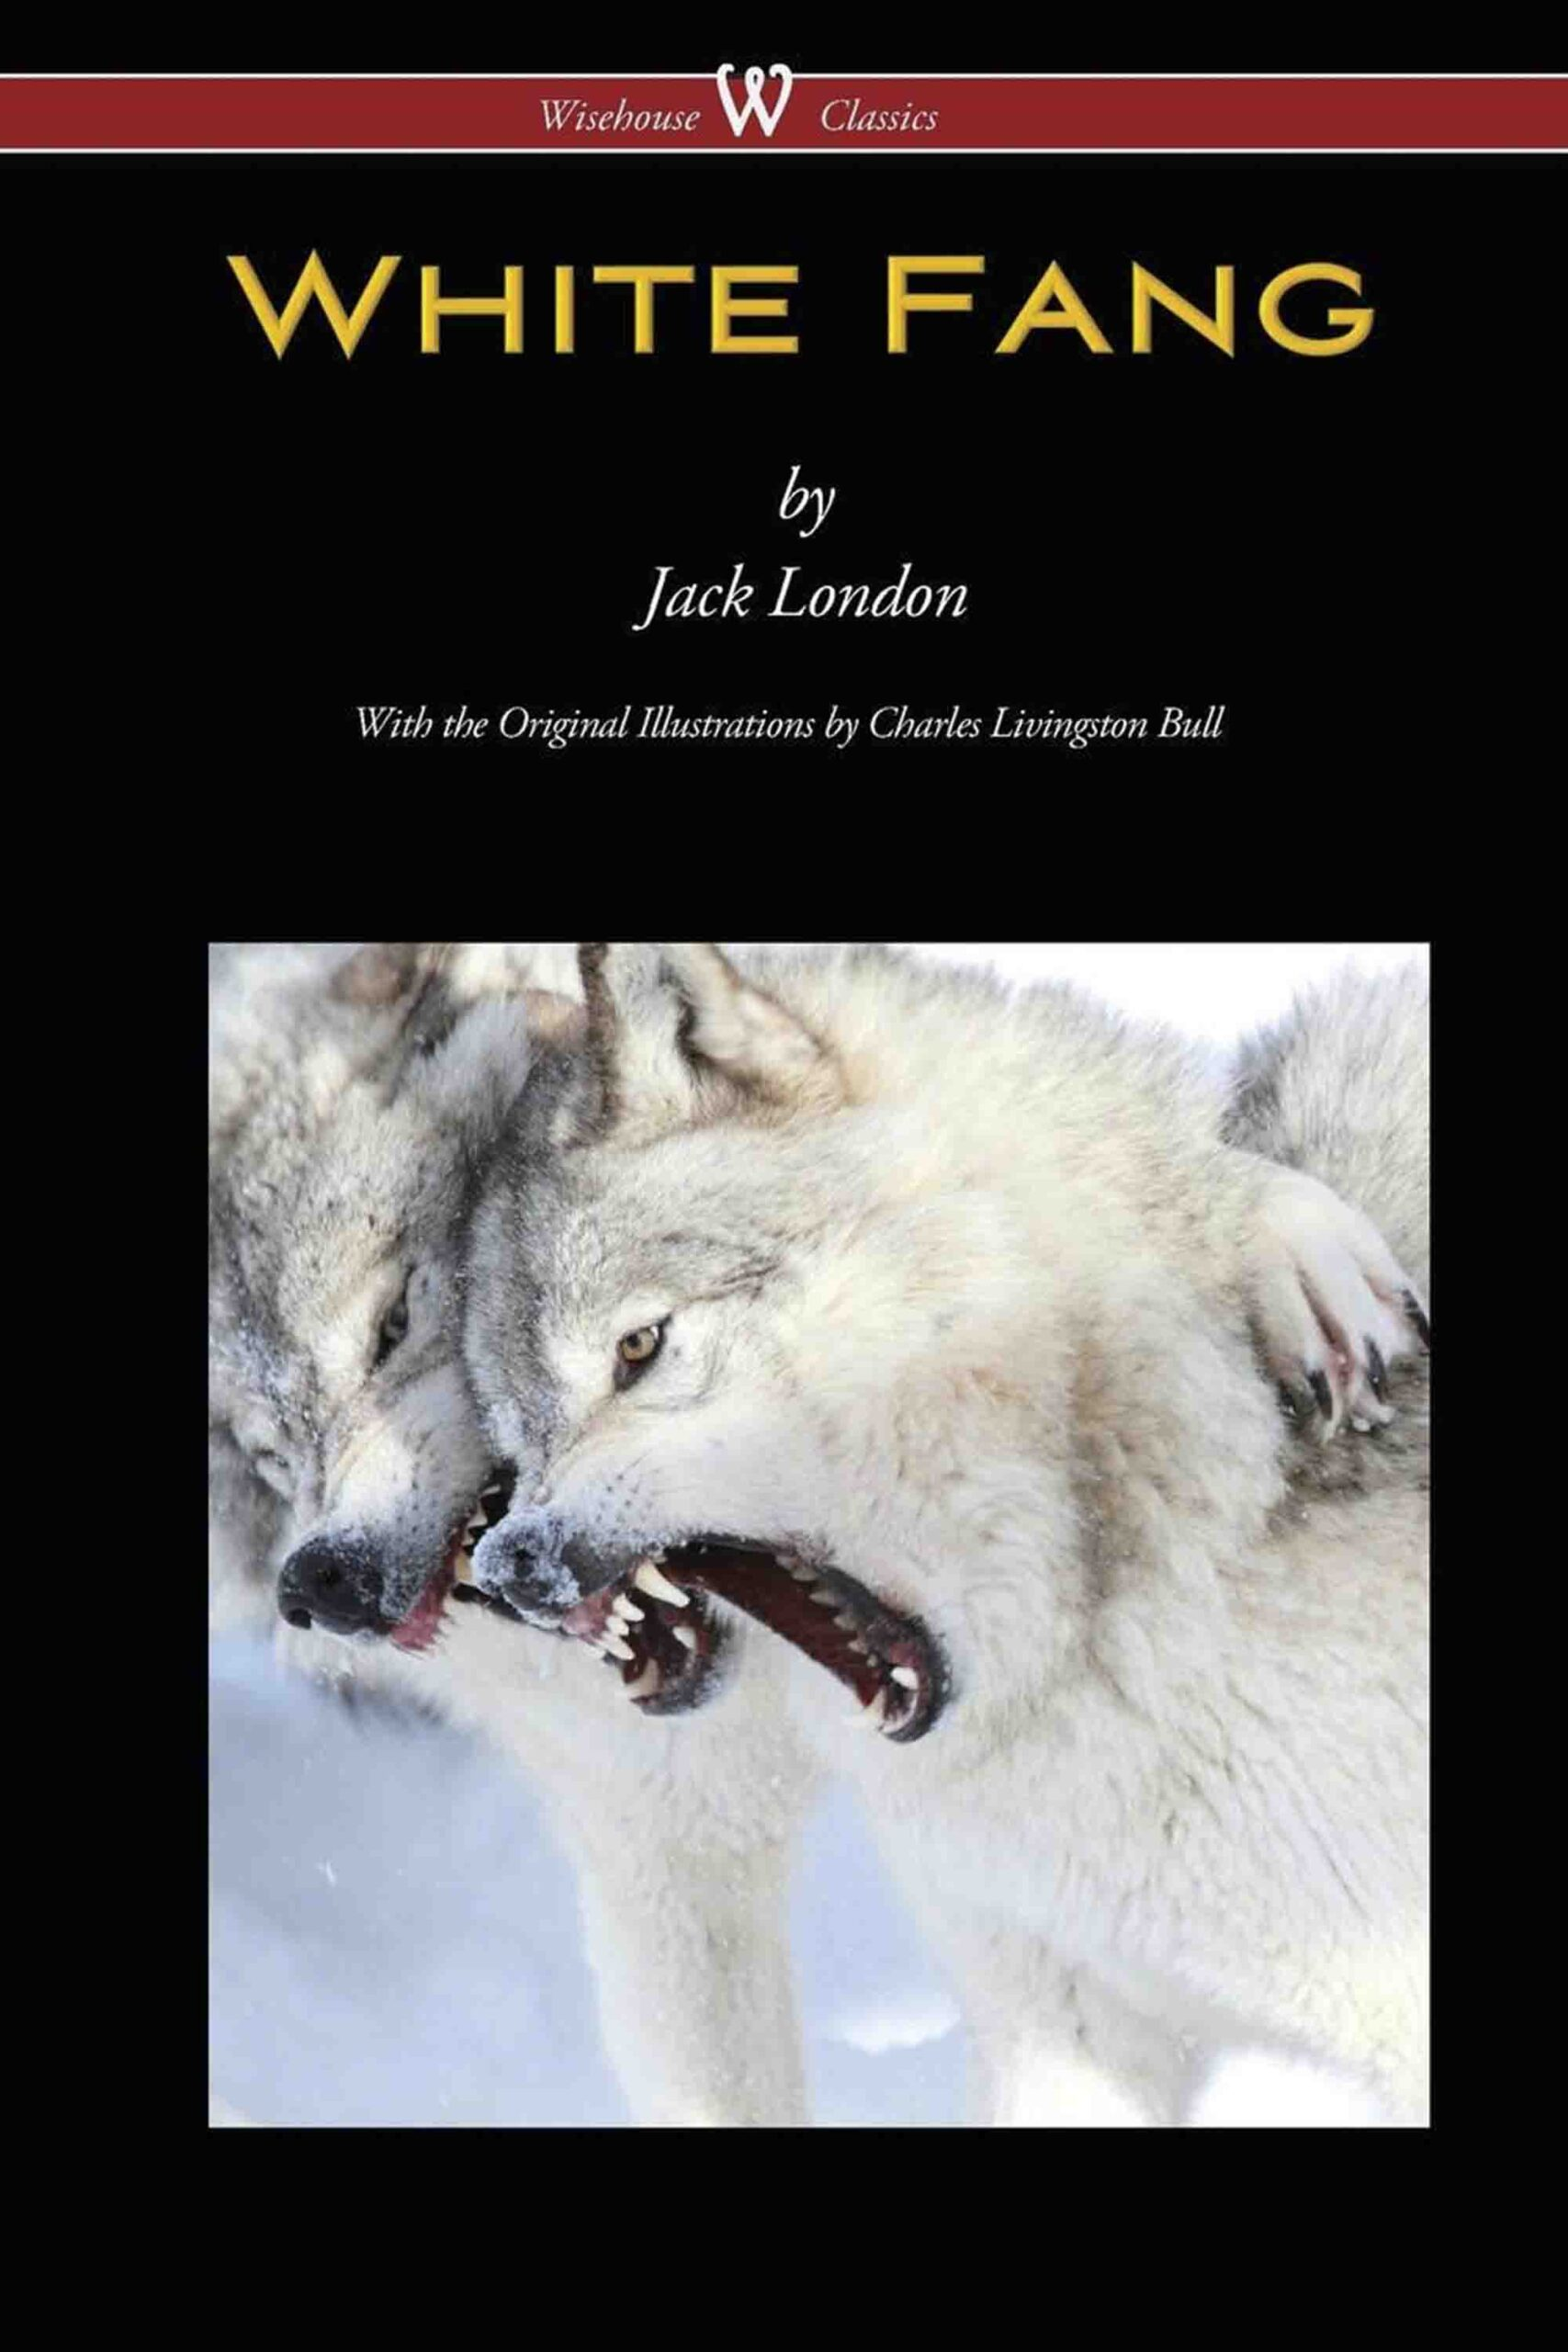 White Fang (Wisehouse Classics – with original illustrations)